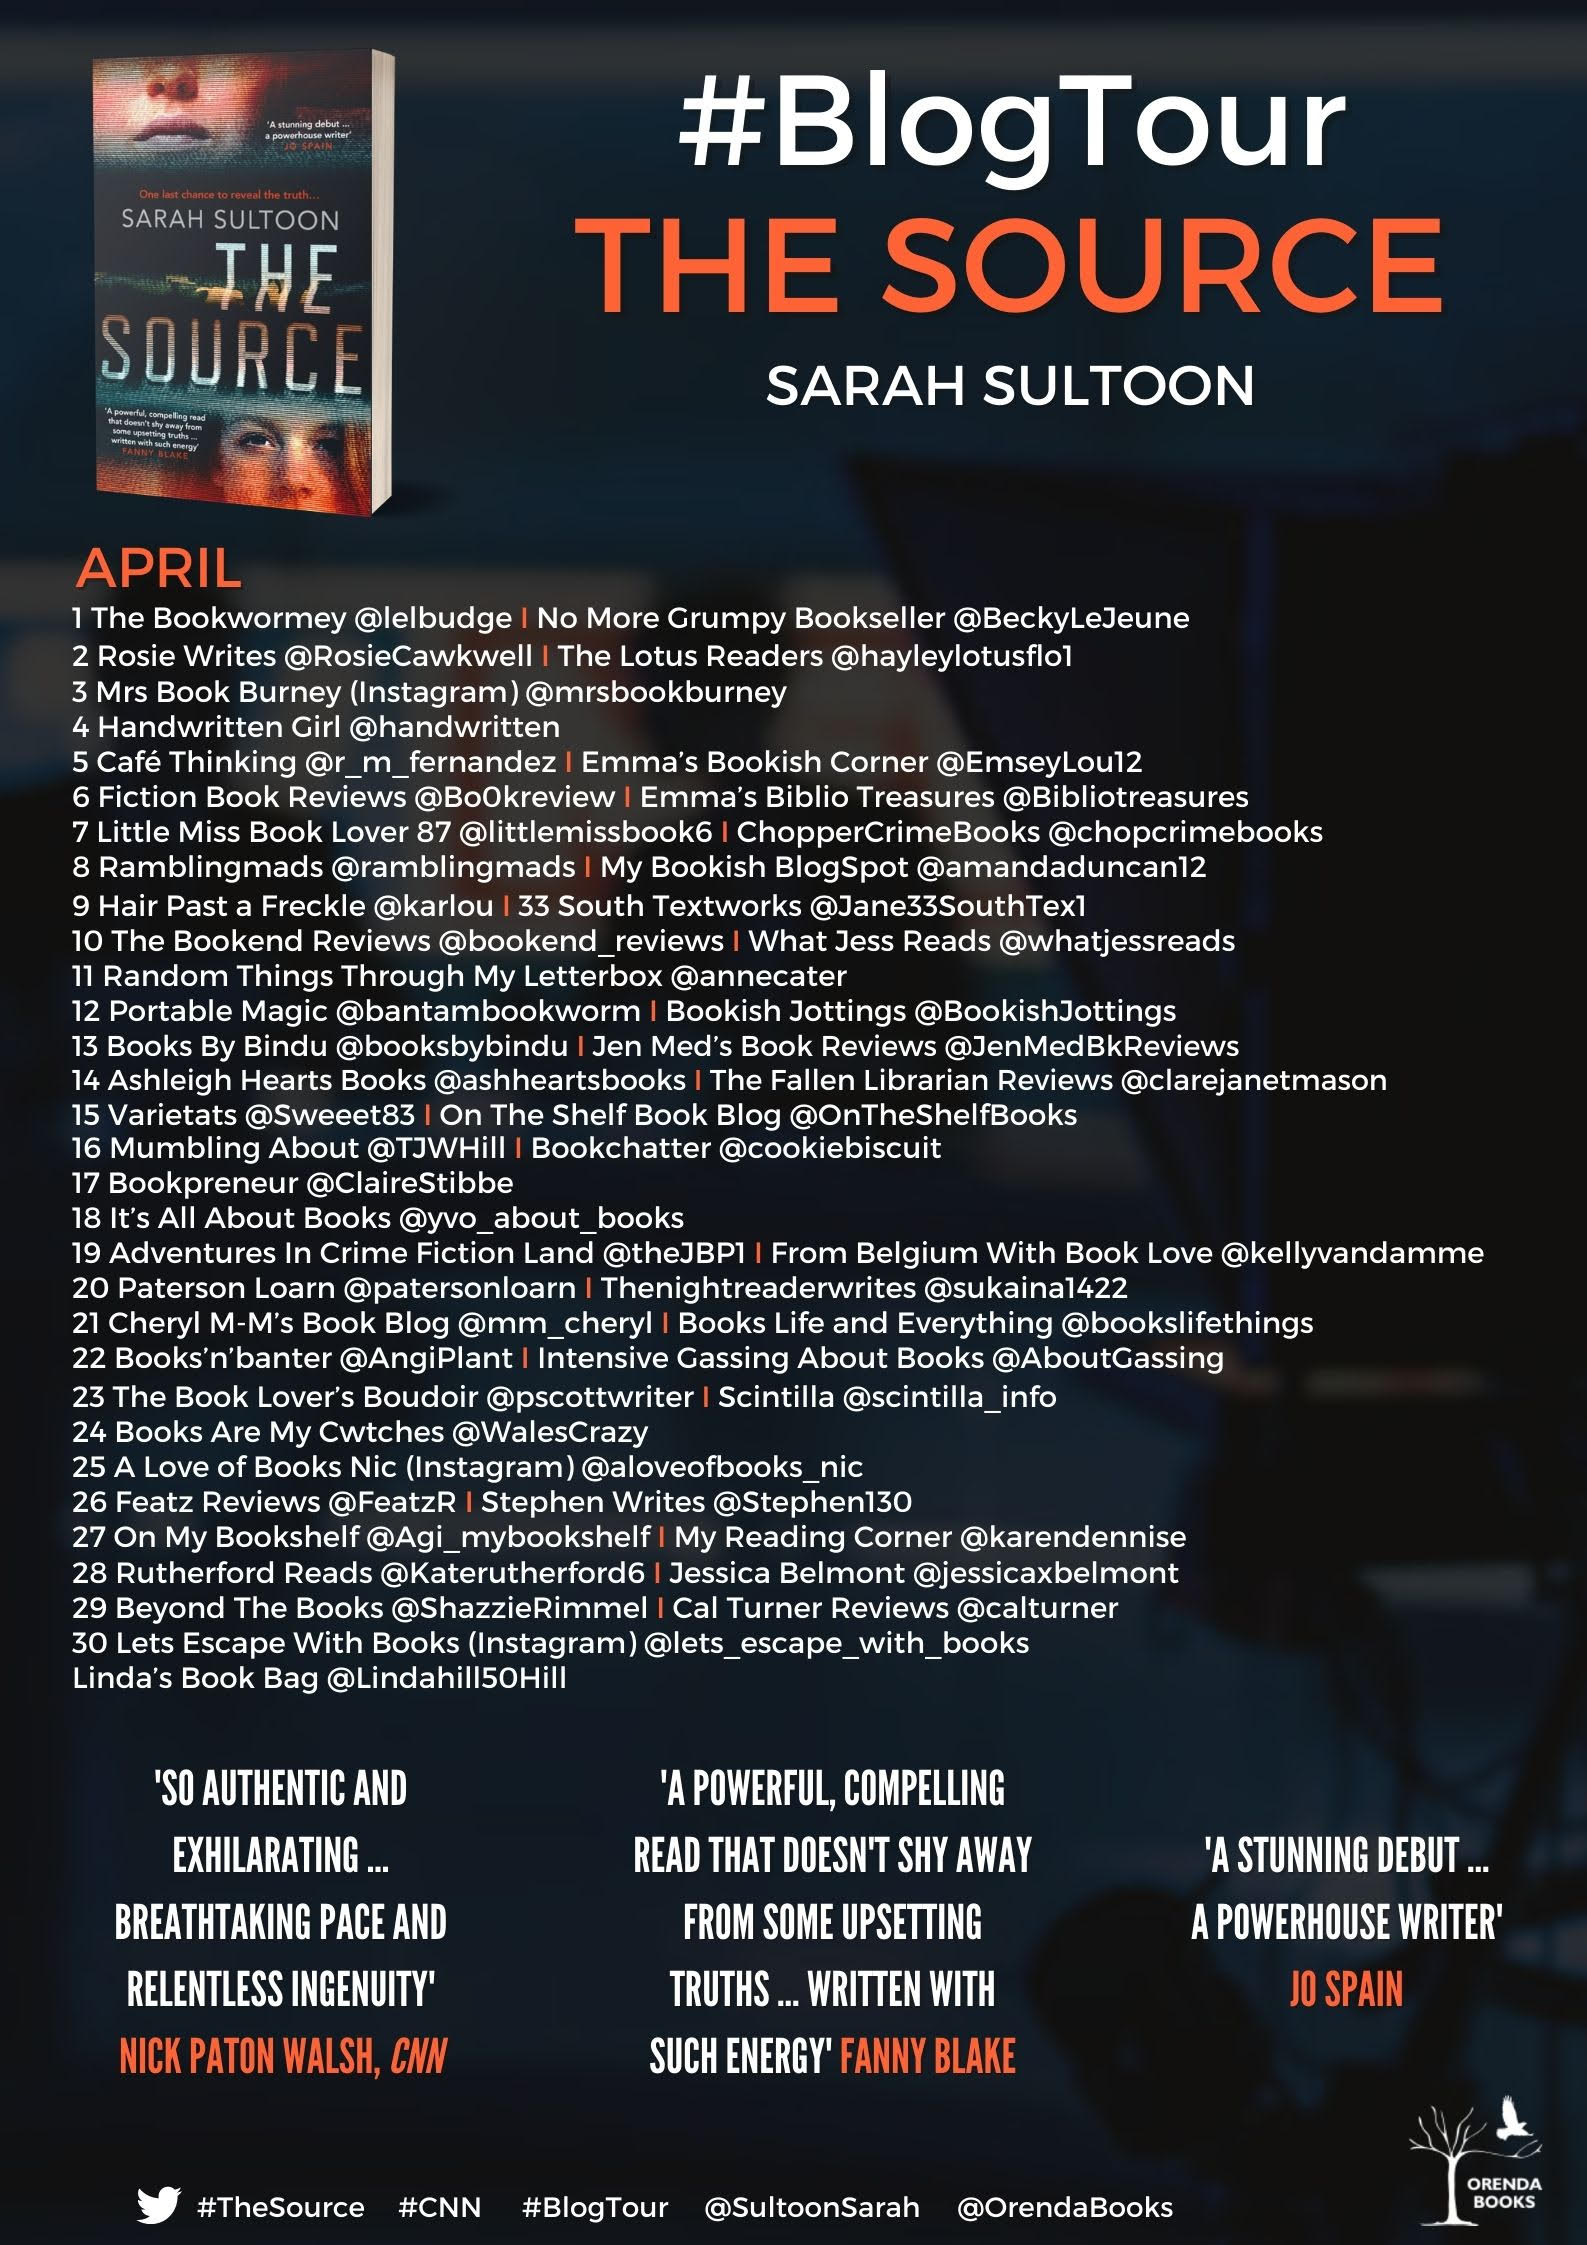 Blog Tour for The Source